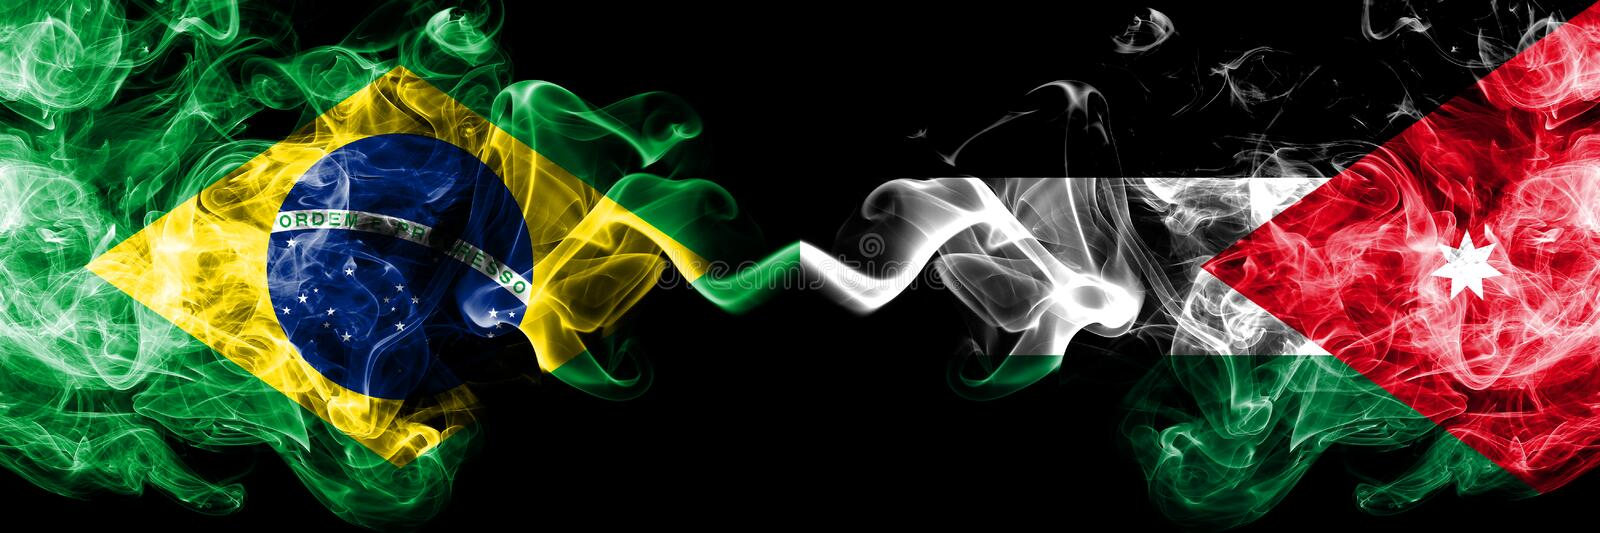 Brazil vs Jordan, Jordanian smoke flags placed side by side. Thick colored silky smoke flags of Brazilian and Jordan, Jordanian.  royalty free stock photography